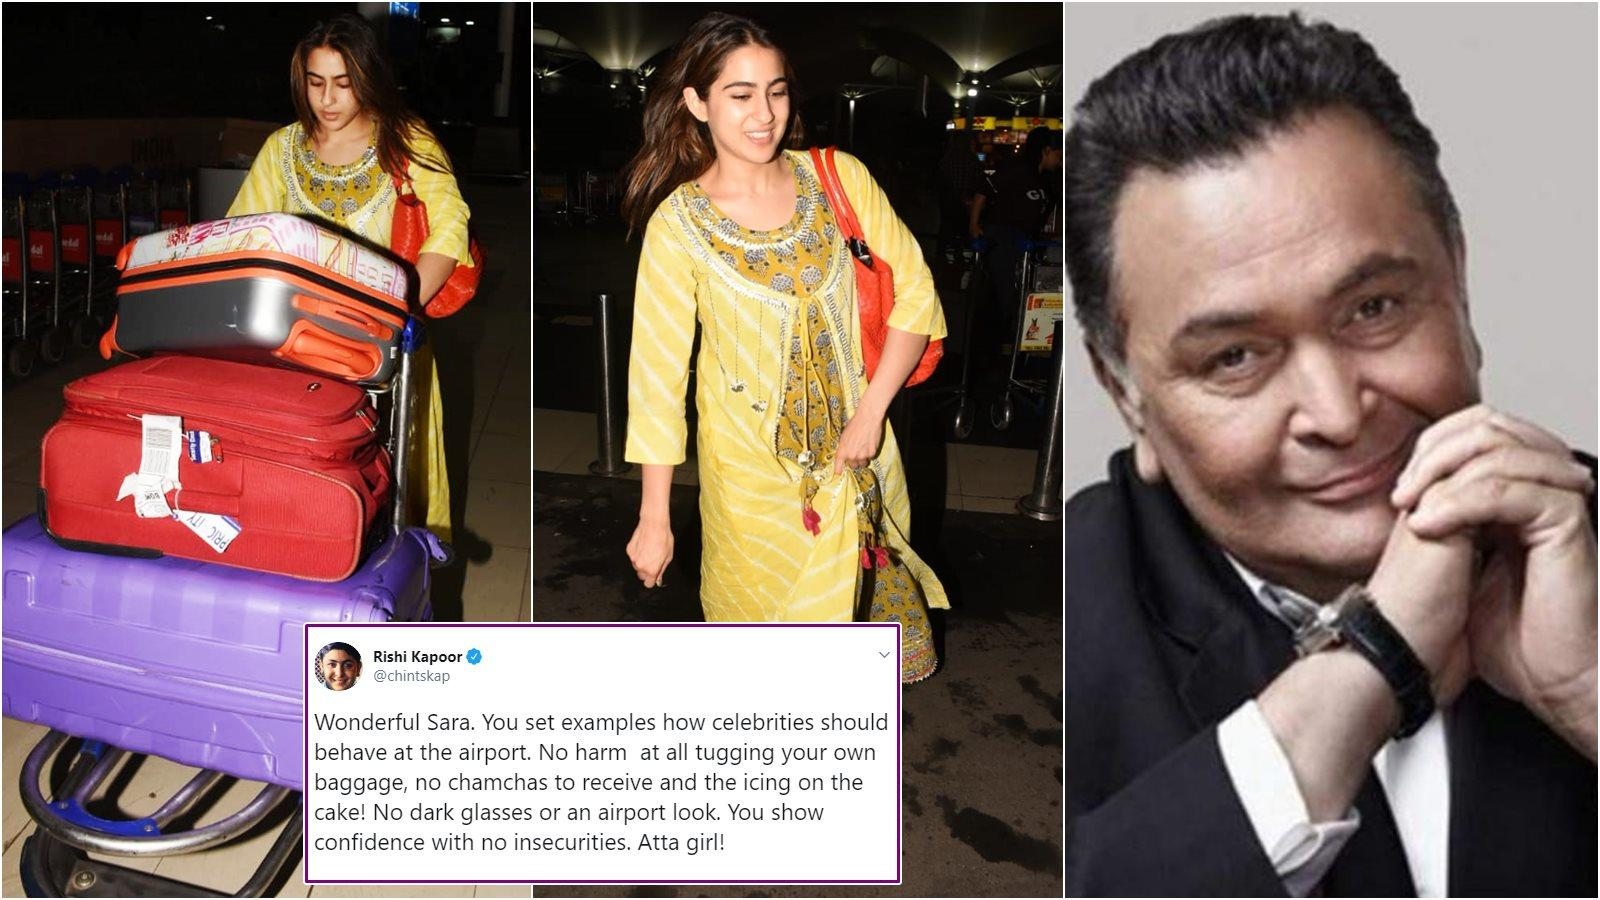 Sara Ali Khan's pic tugging her own luggage at the airport becomes viral,  Rishi Kapoor praises her